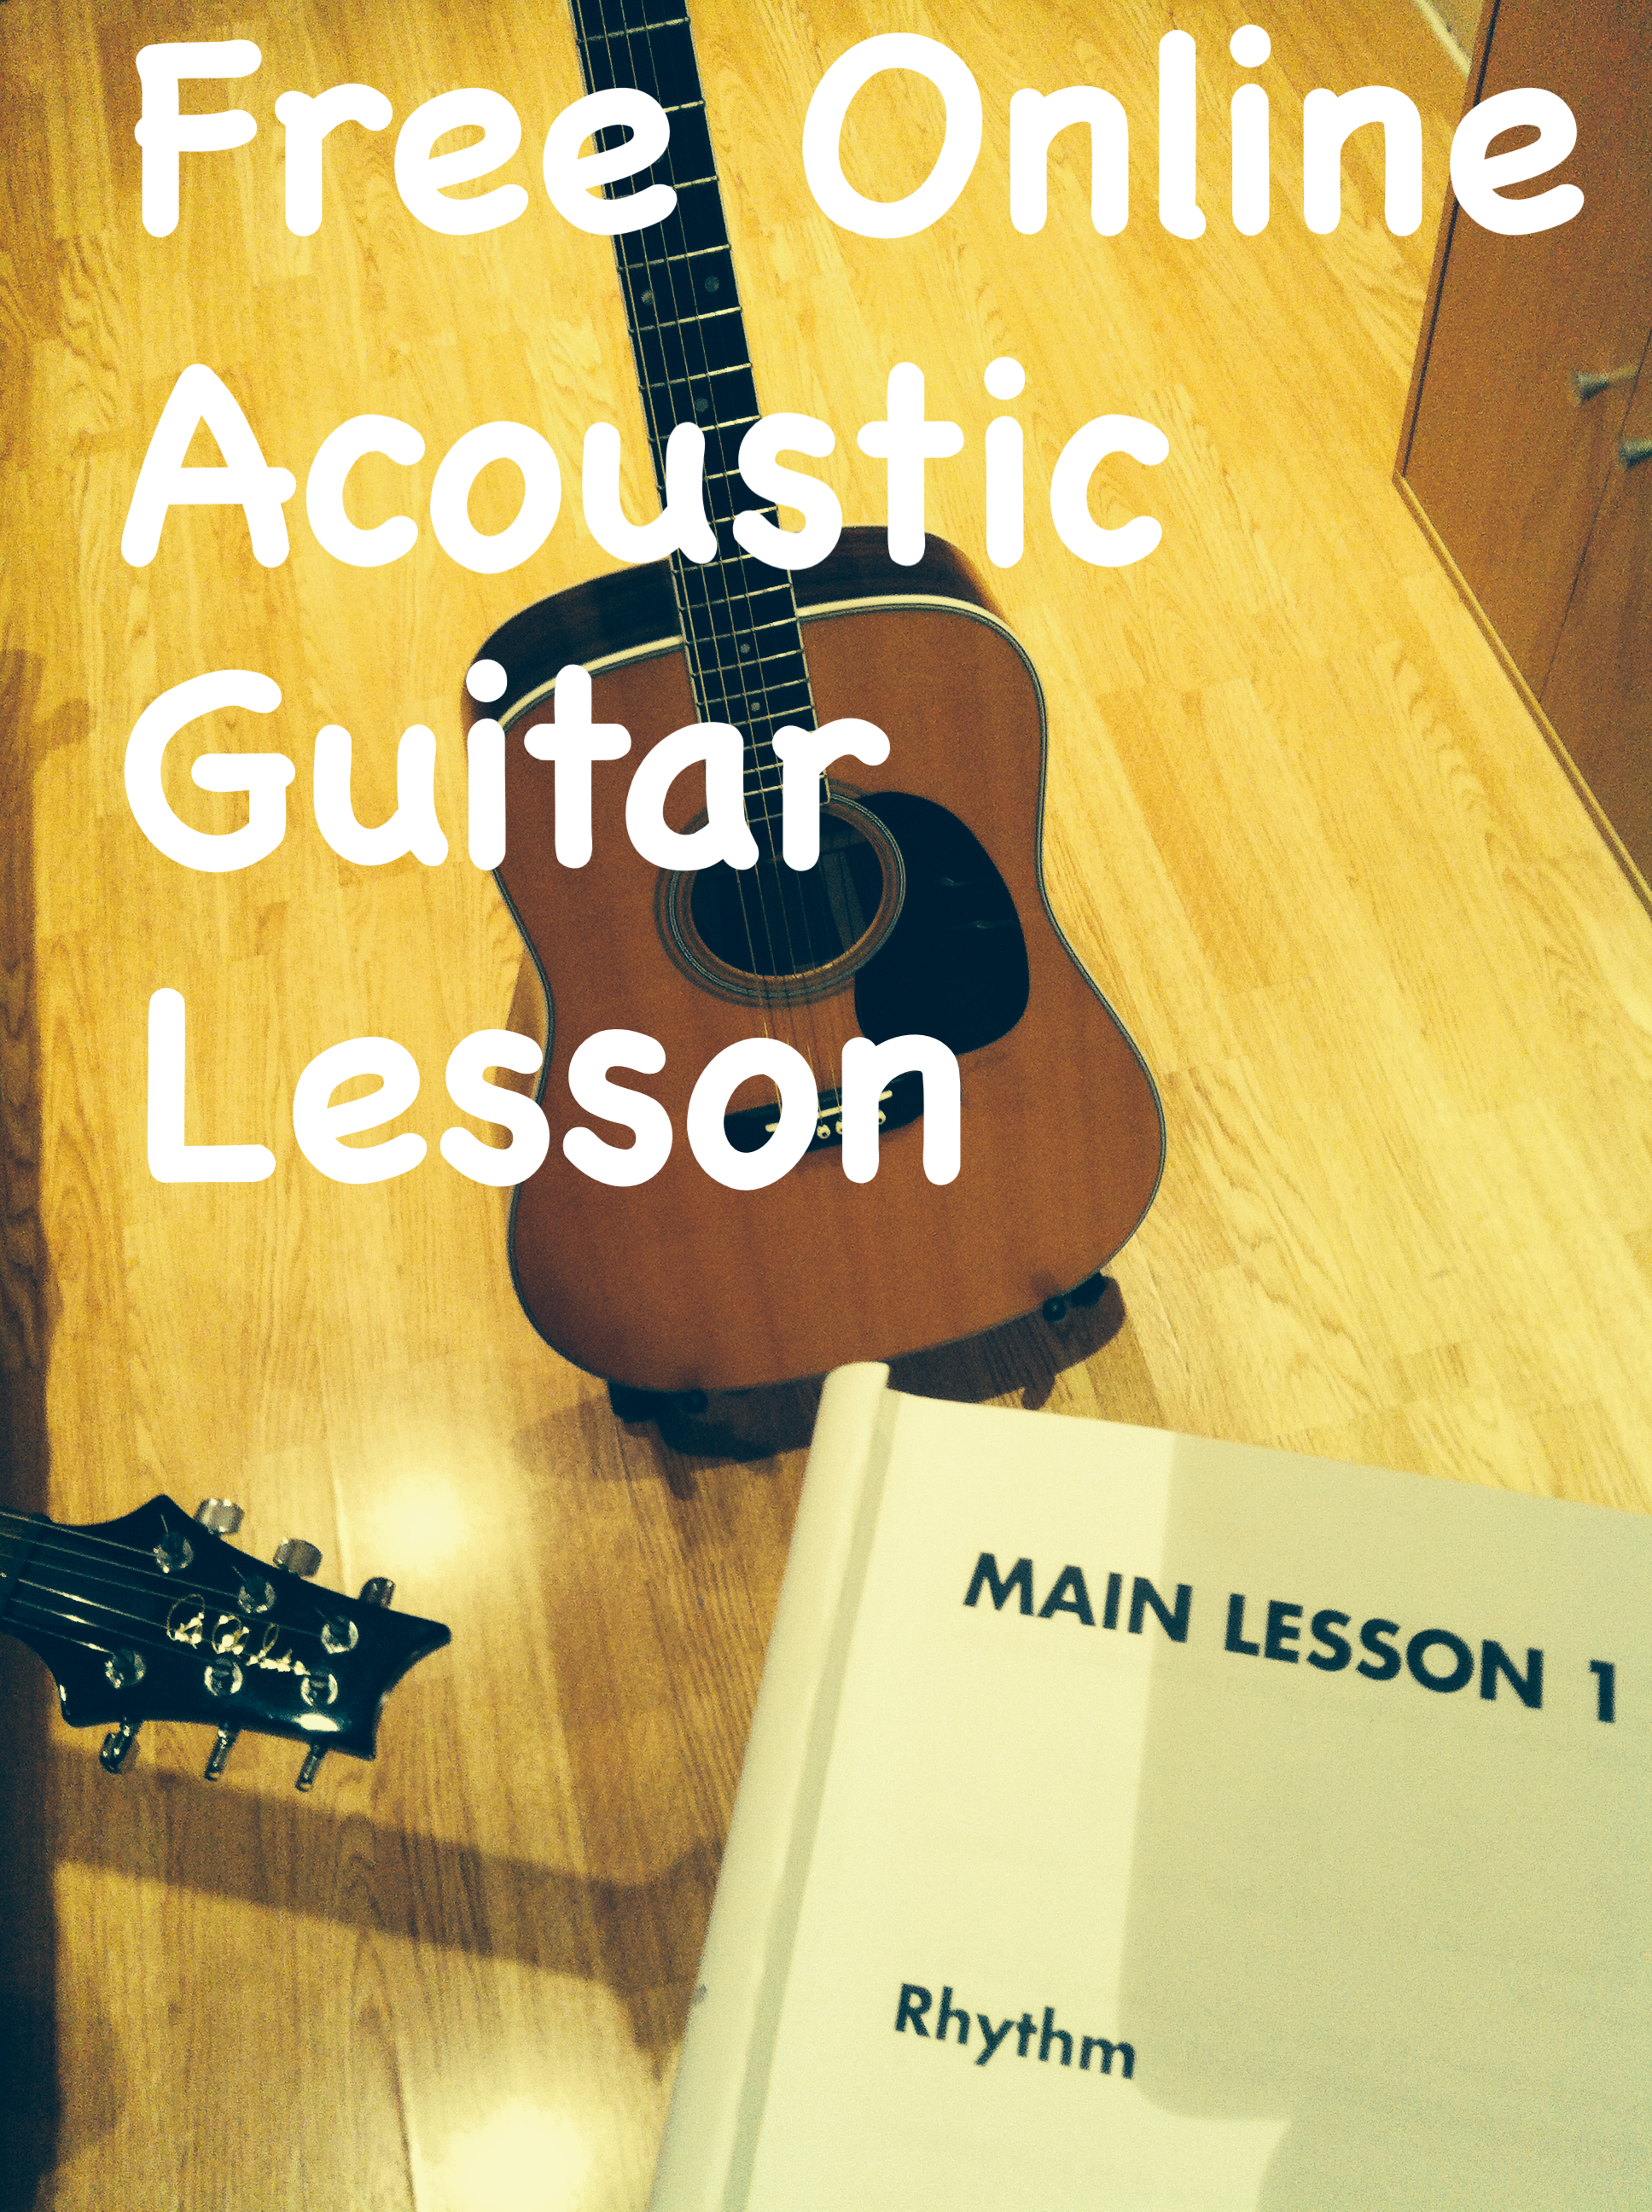 E Major And E Sus 4 Diagram Free Online Guitar Lesson Learn How